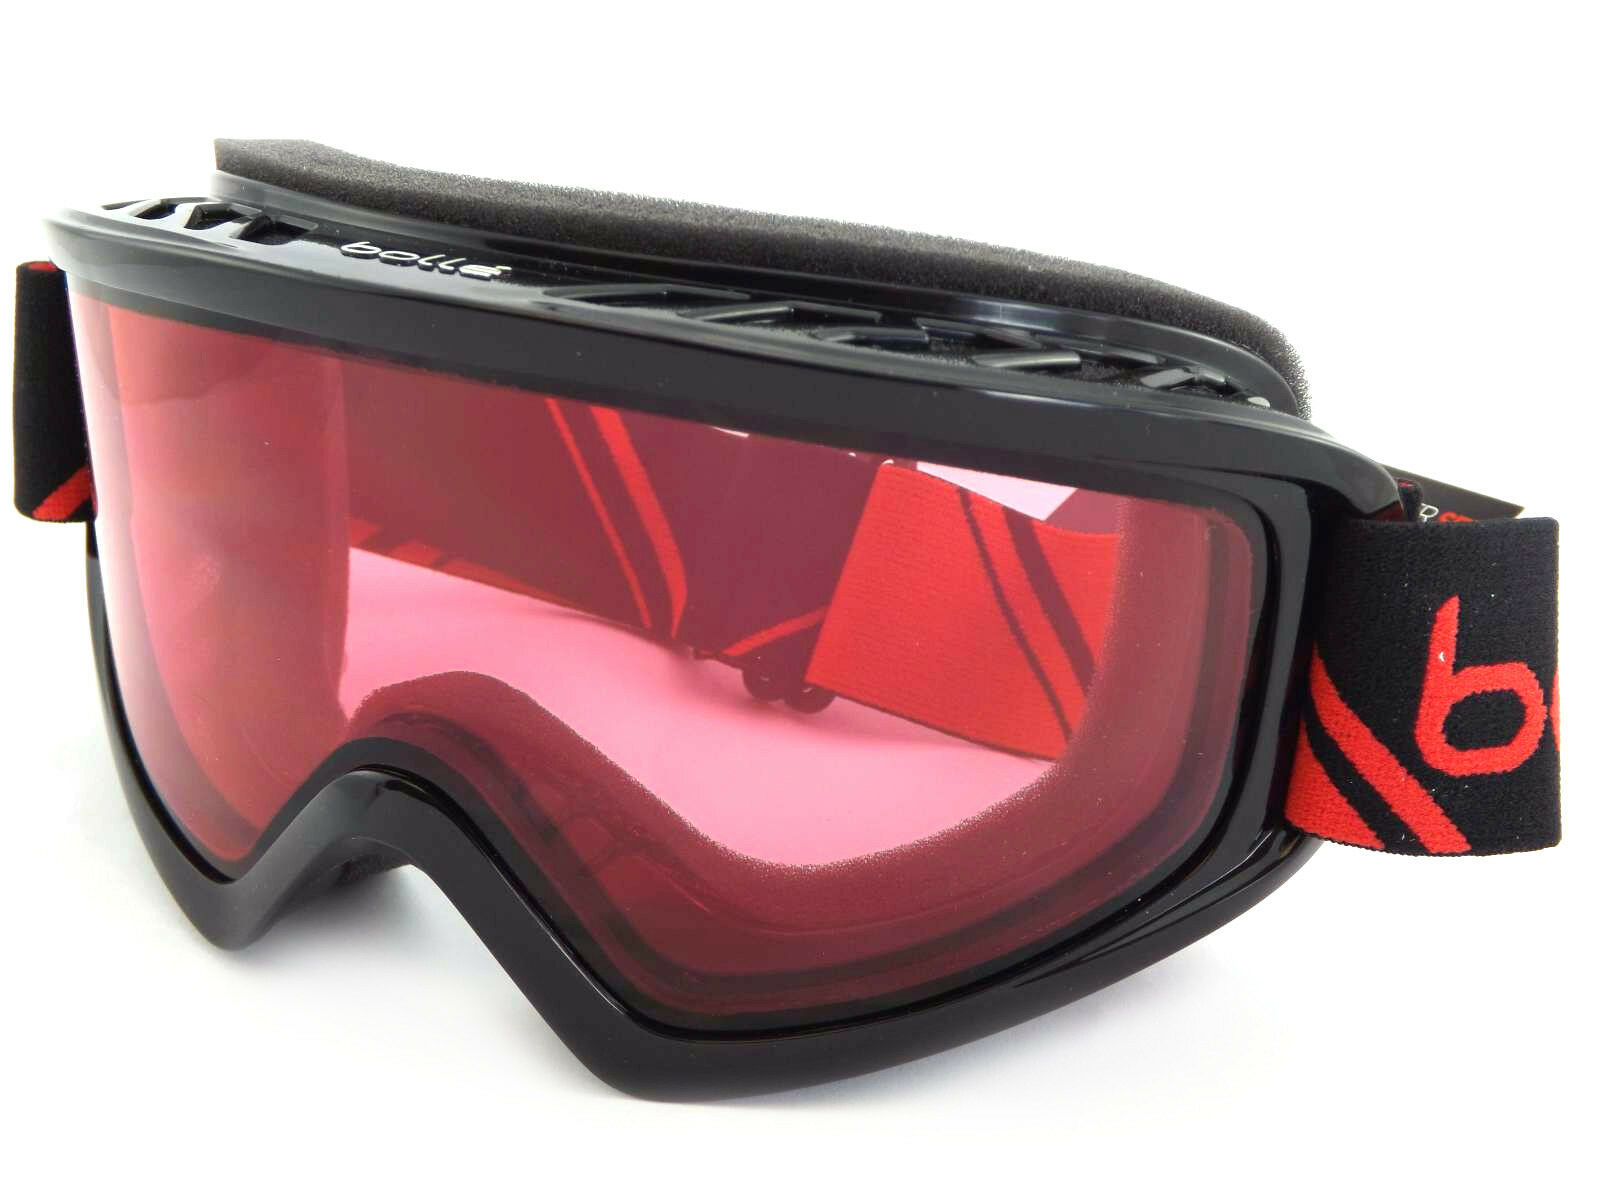 da5838ee83 Details about Bolle Freeze Ski Snowboarding Goggles Shiny Black Red /  Vermillion CAT.2 21491